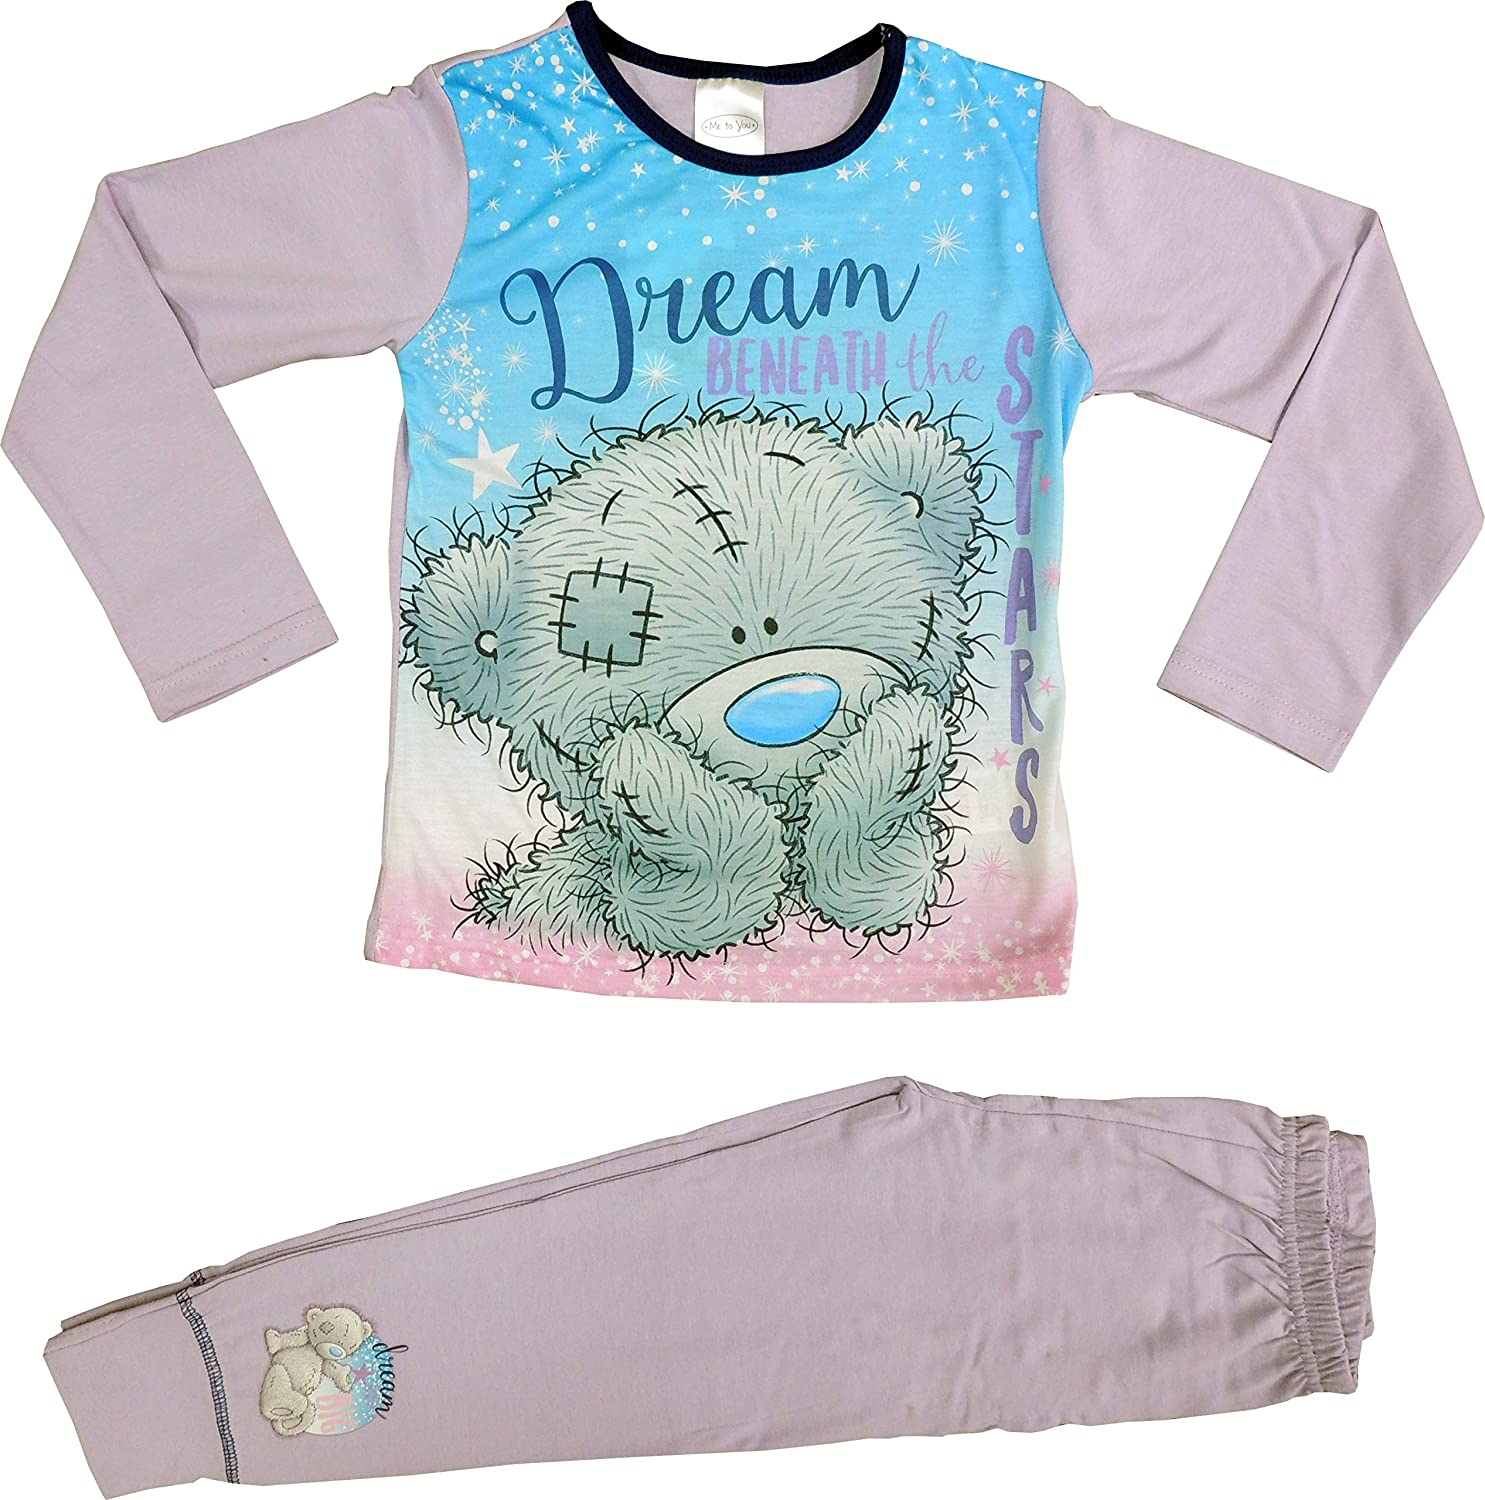 Tatty Teddy Me to You Girls Pyjamas PJs Ages 5 to 12 Years Old